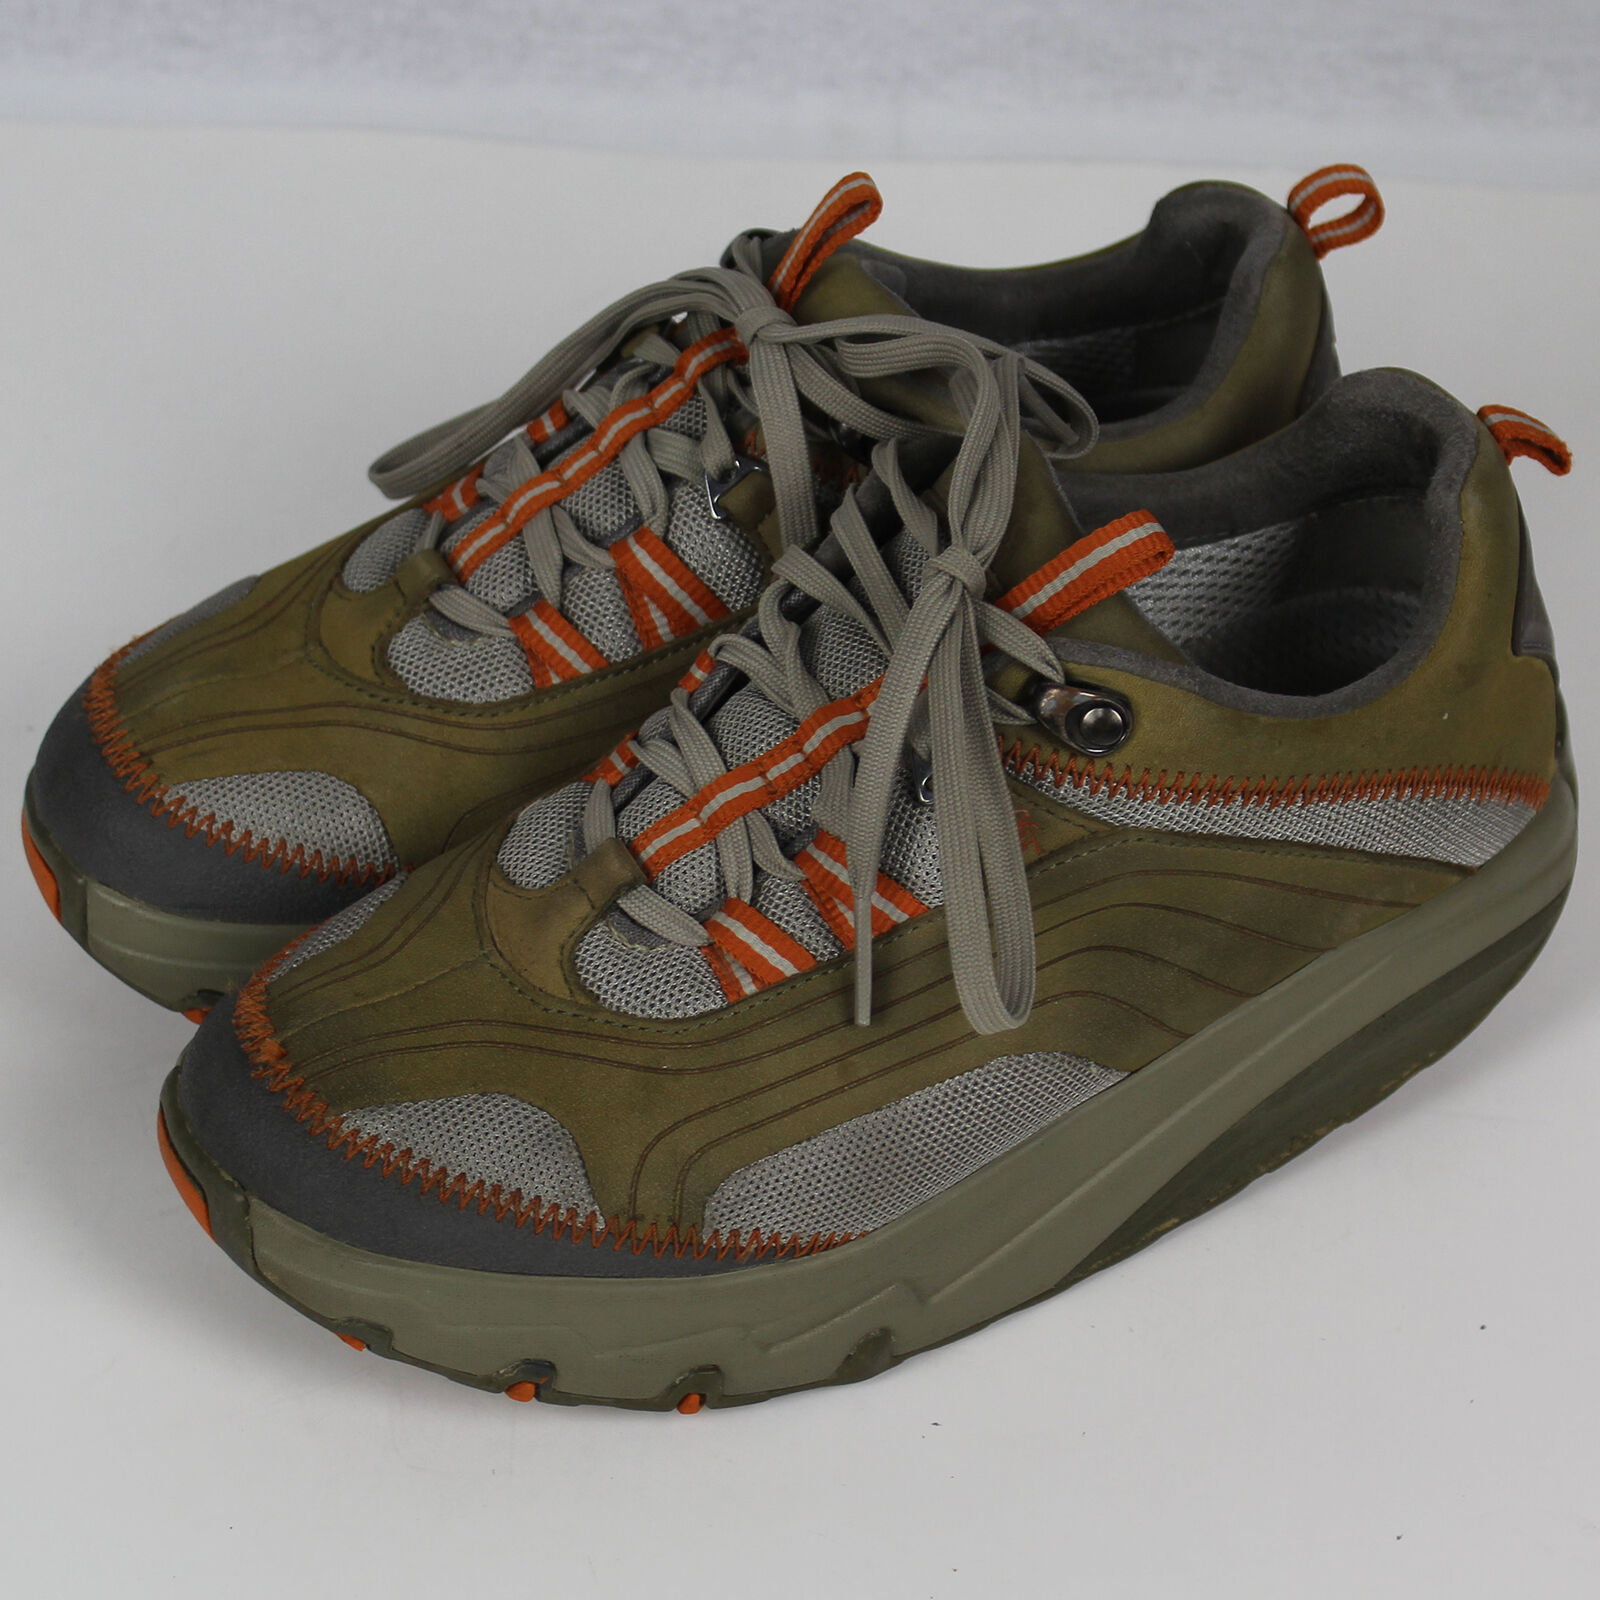 MBT Fitness Sneaker shoes Lace Up Green orange Women Size 7.5 7 1 2 37 2 3 EUC